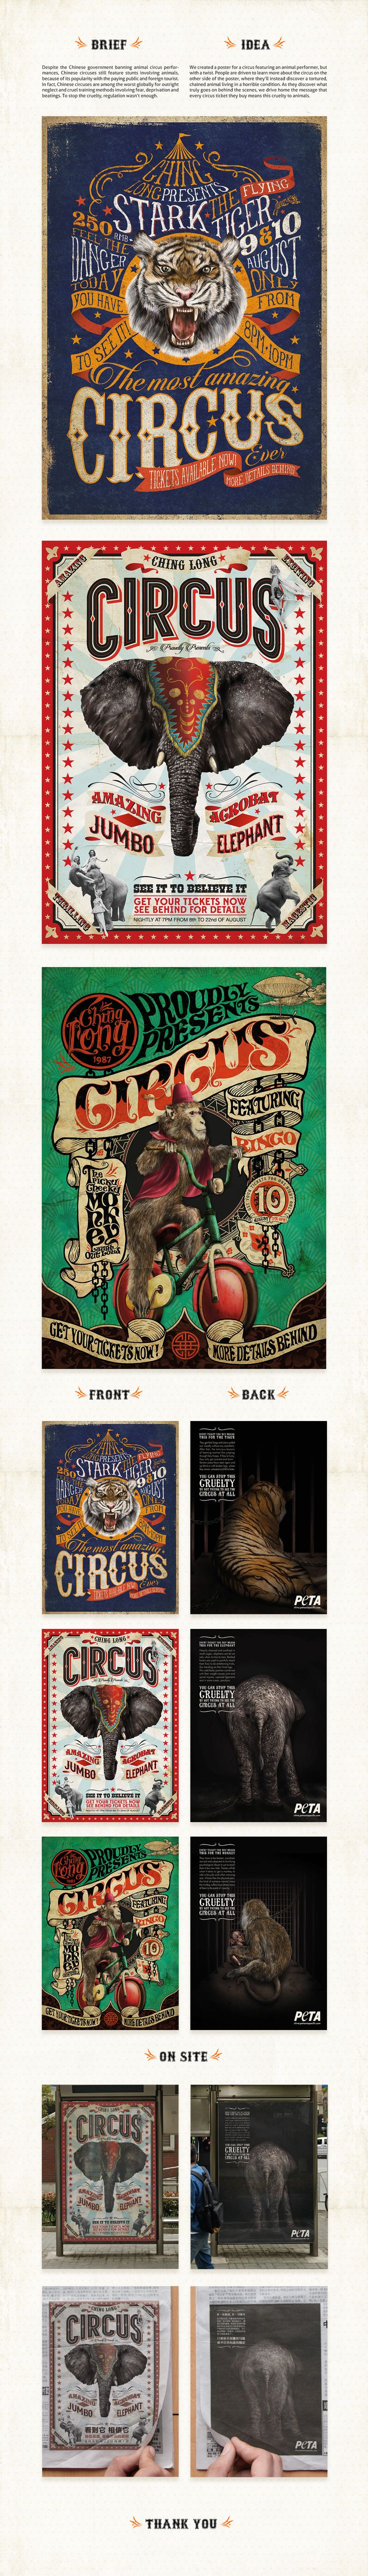 Peta Circus on Behance                                                                                                                                                                                 More